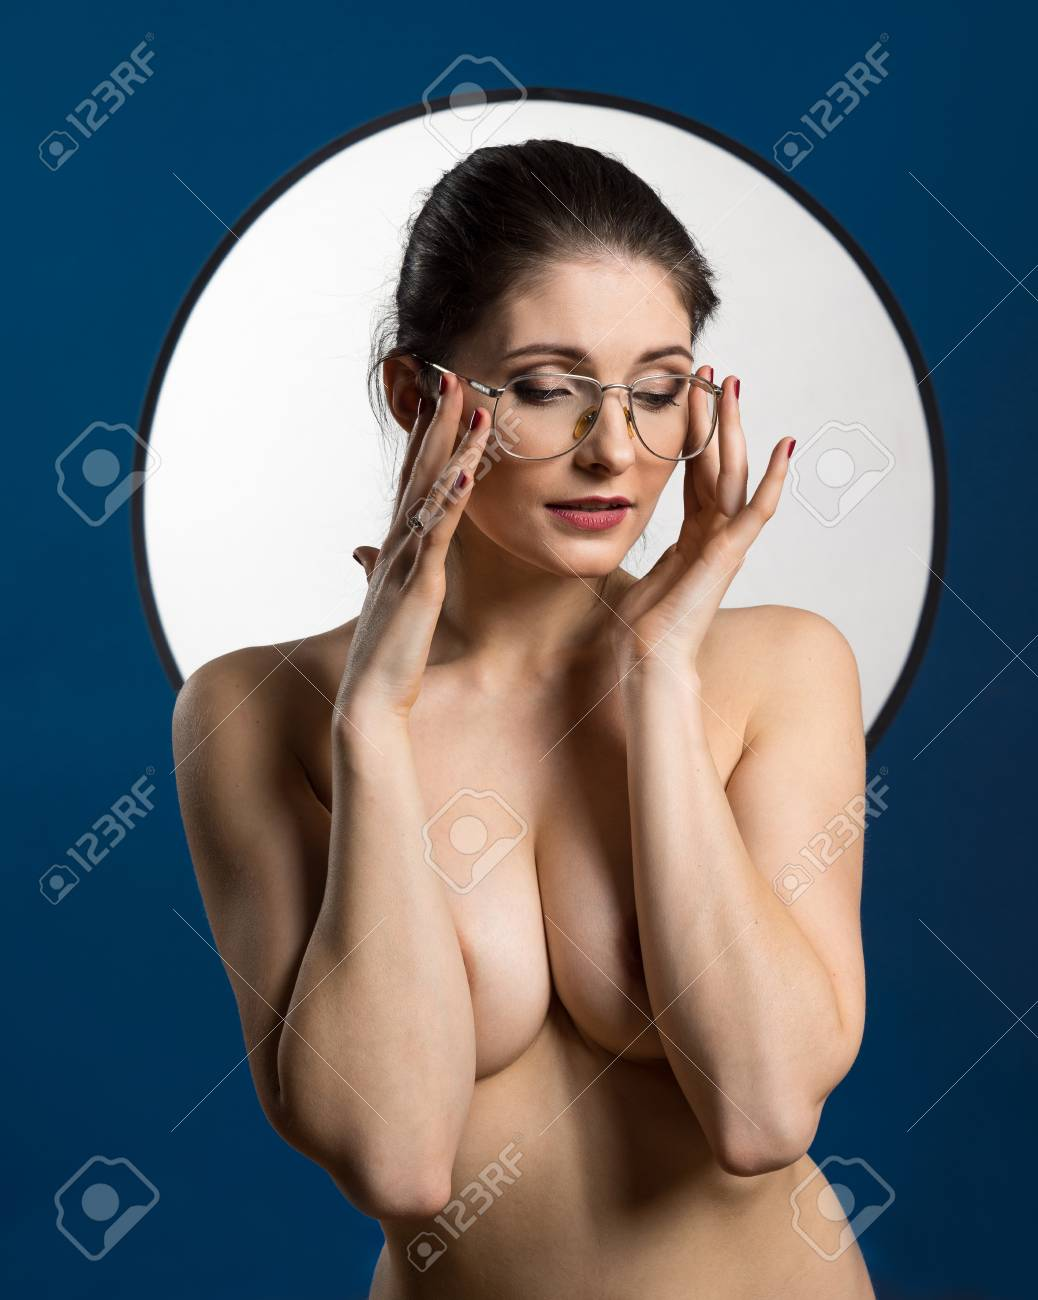 Nude women text pic